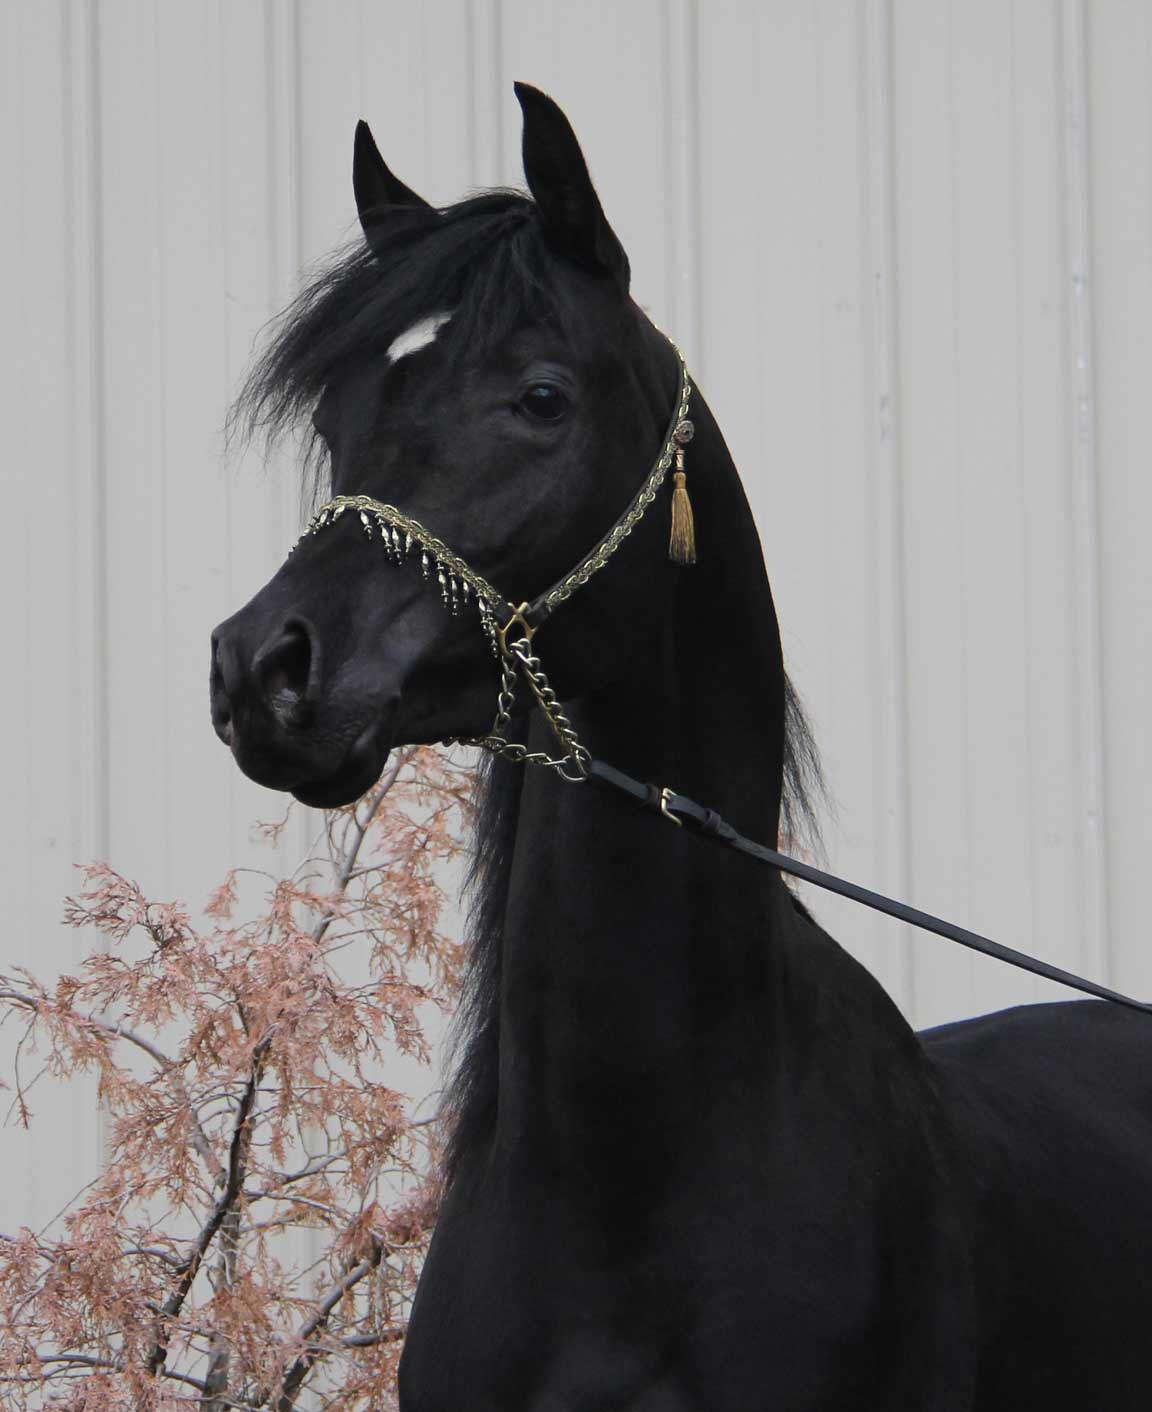 Black colt HF Creed by Ferric BP